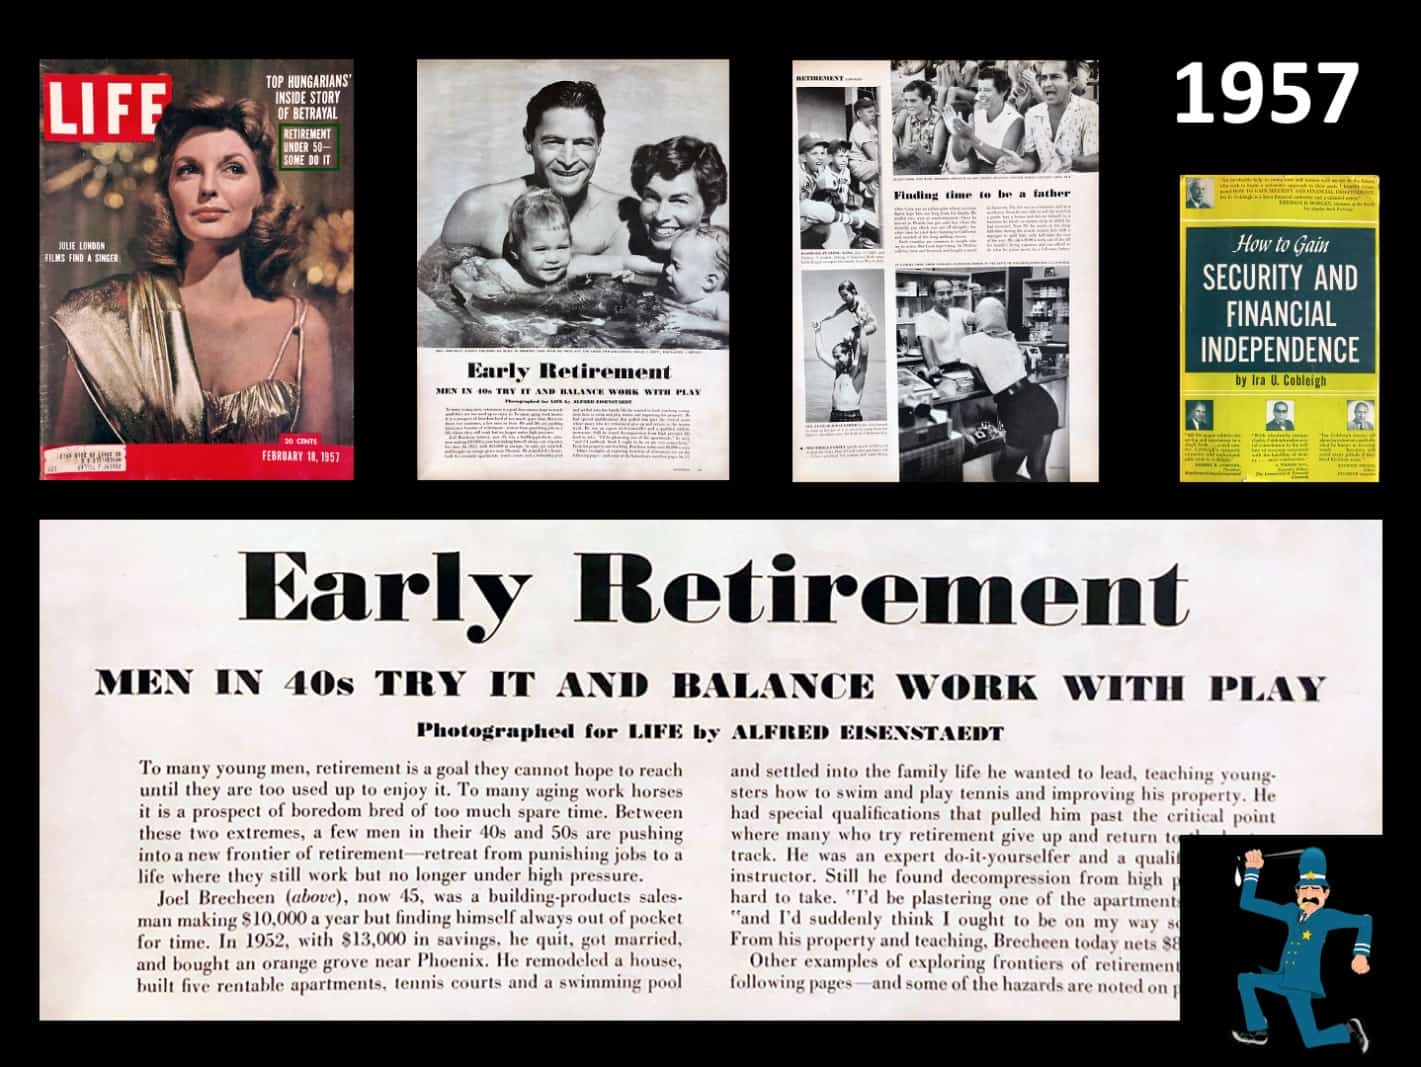 Life magazine on early retirement in 1957